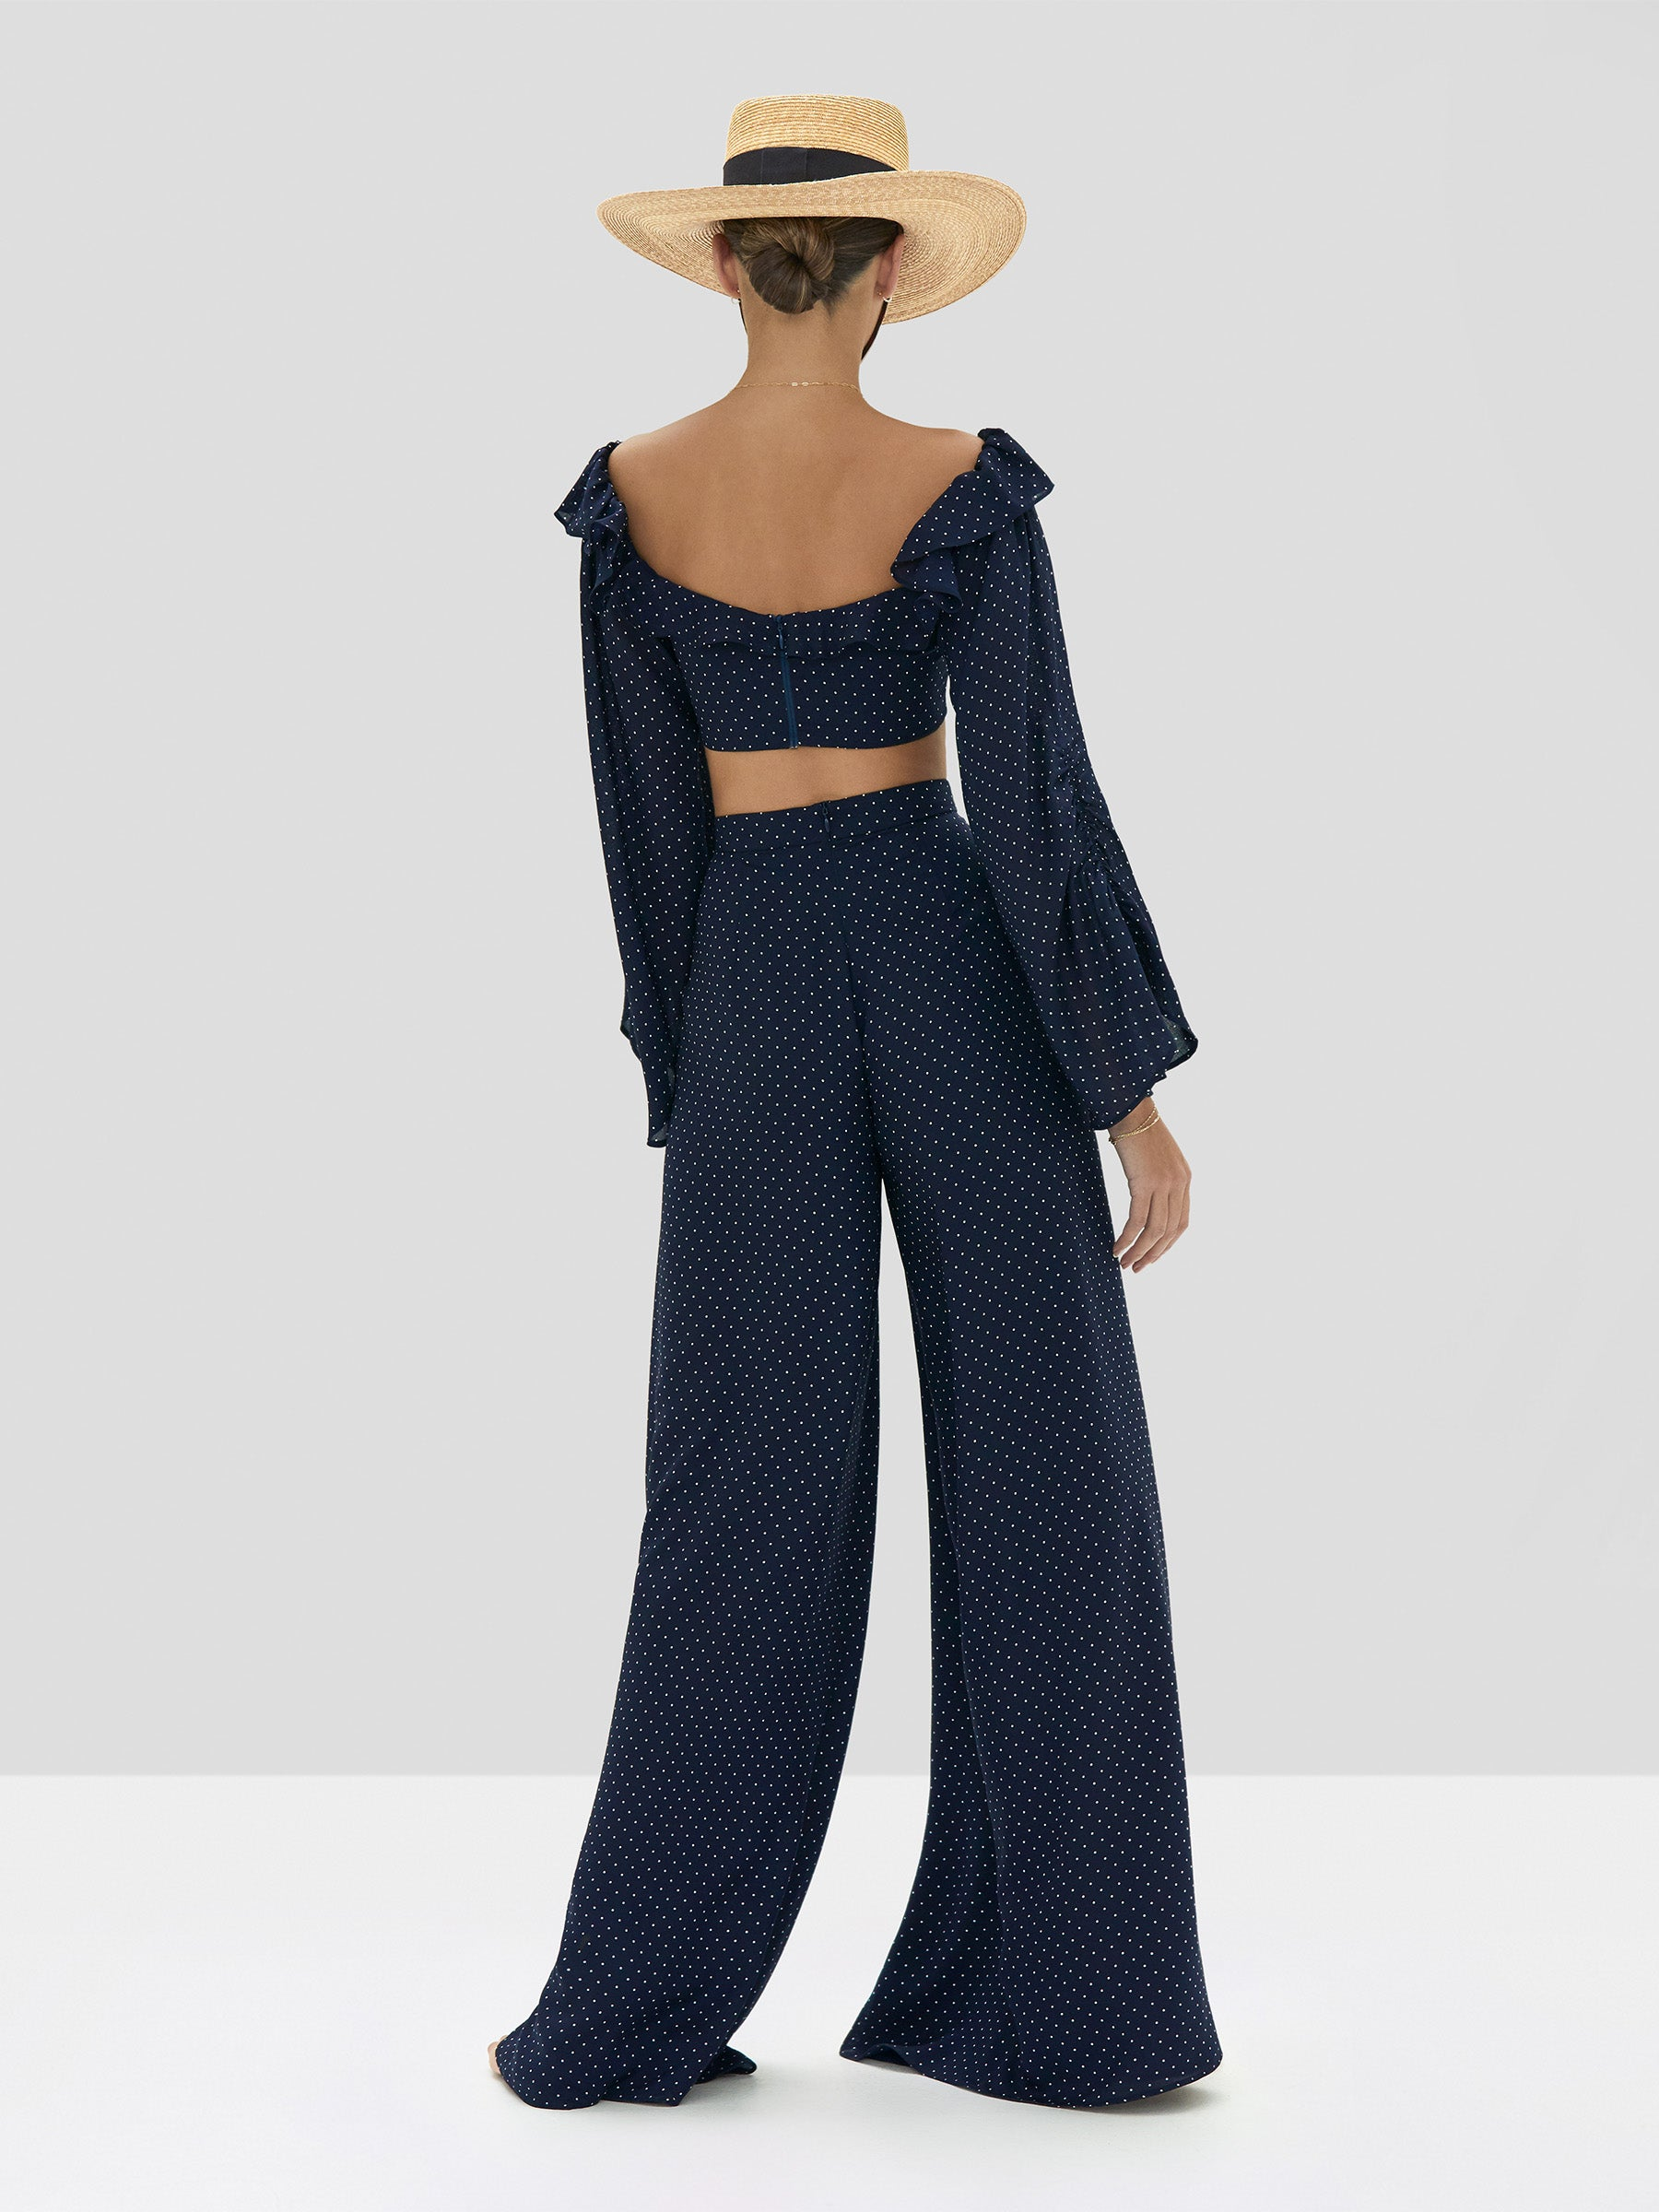 Alexis Ewa Top and Antonin Pant in Navy Dot Linen from Spring Summer 2020 Collection - Rear View